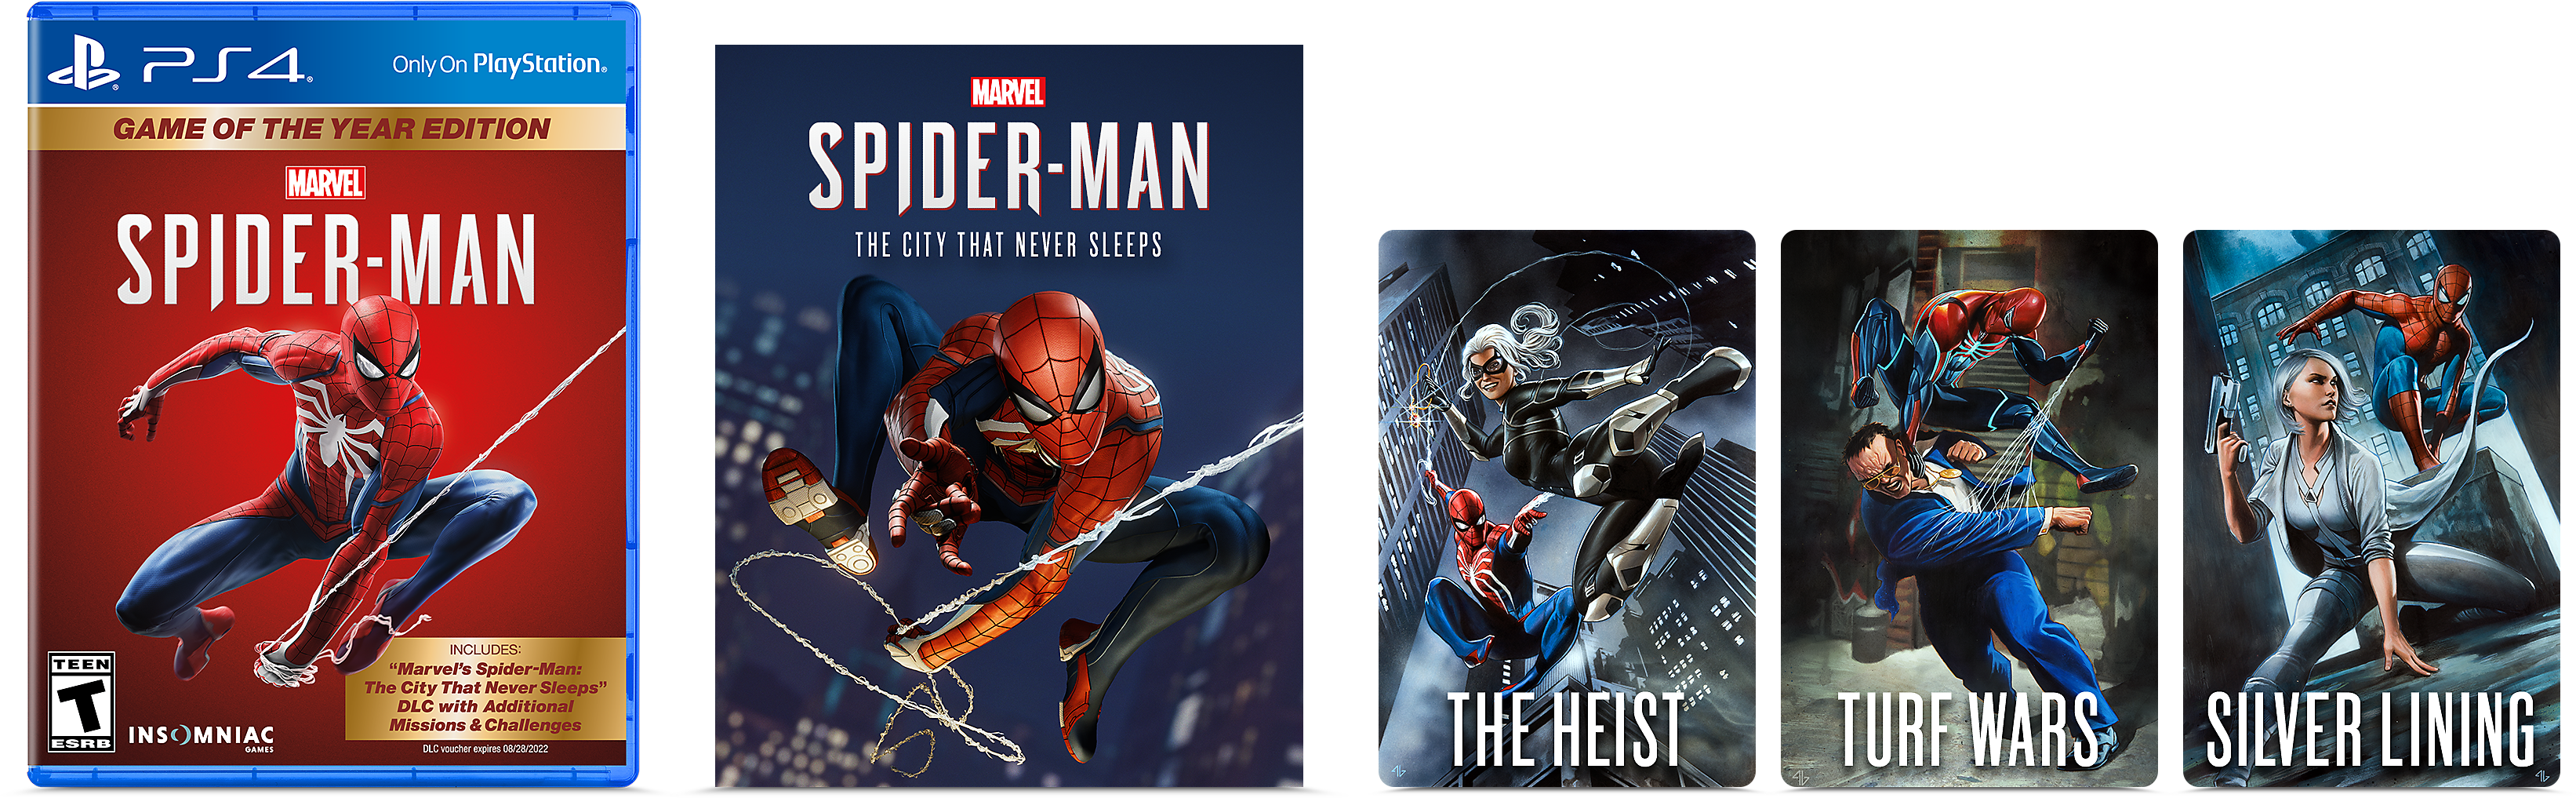 Marvel's Spider-Man Game of the Year Edition Contents